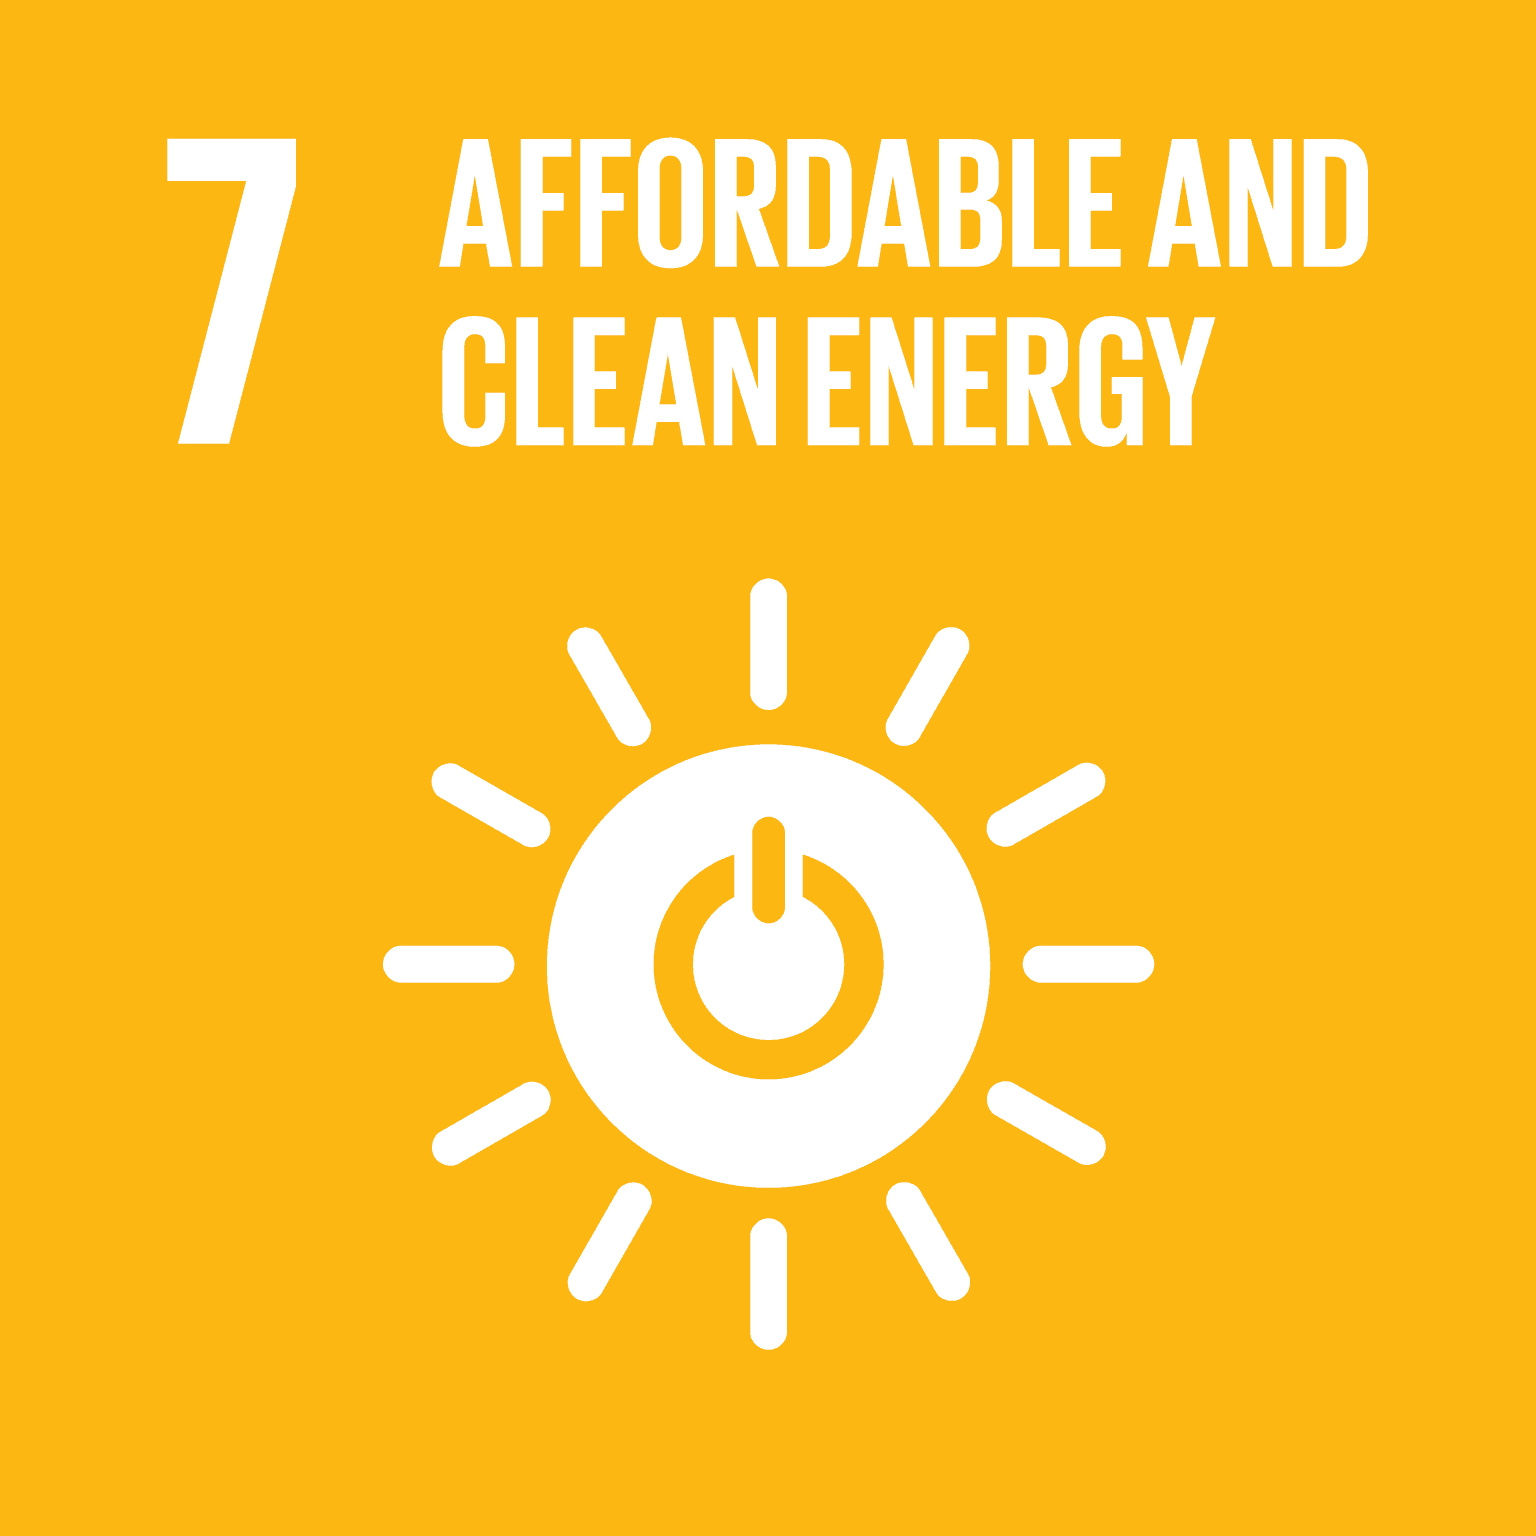 UN SDG 7 - Affordable and Clean Energy